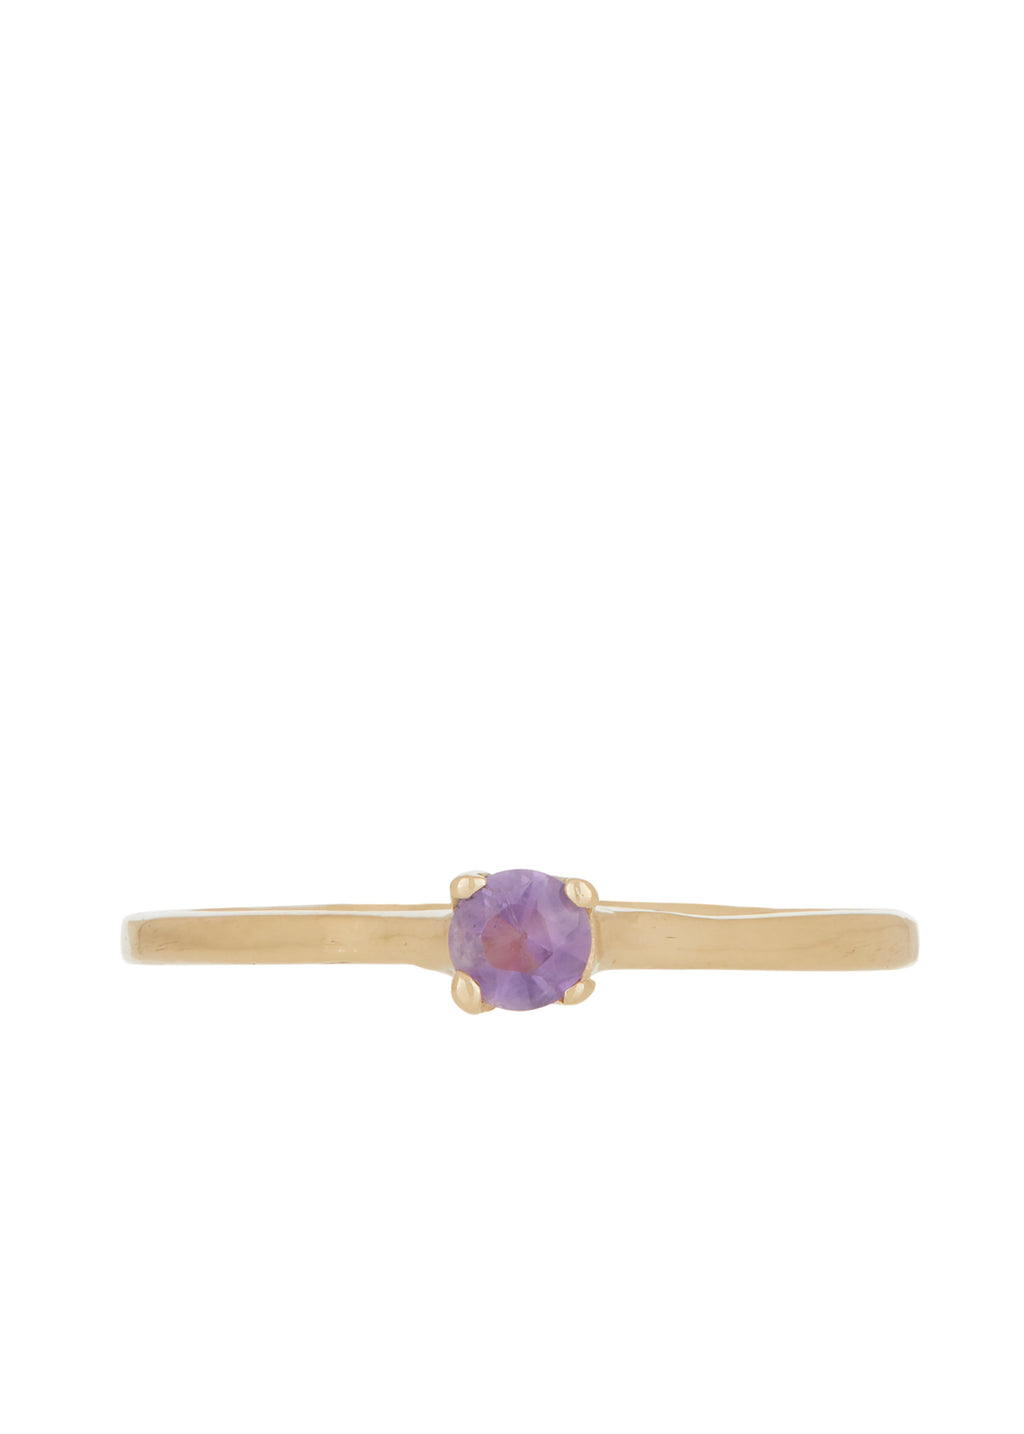 Palace Ring - Amethyst